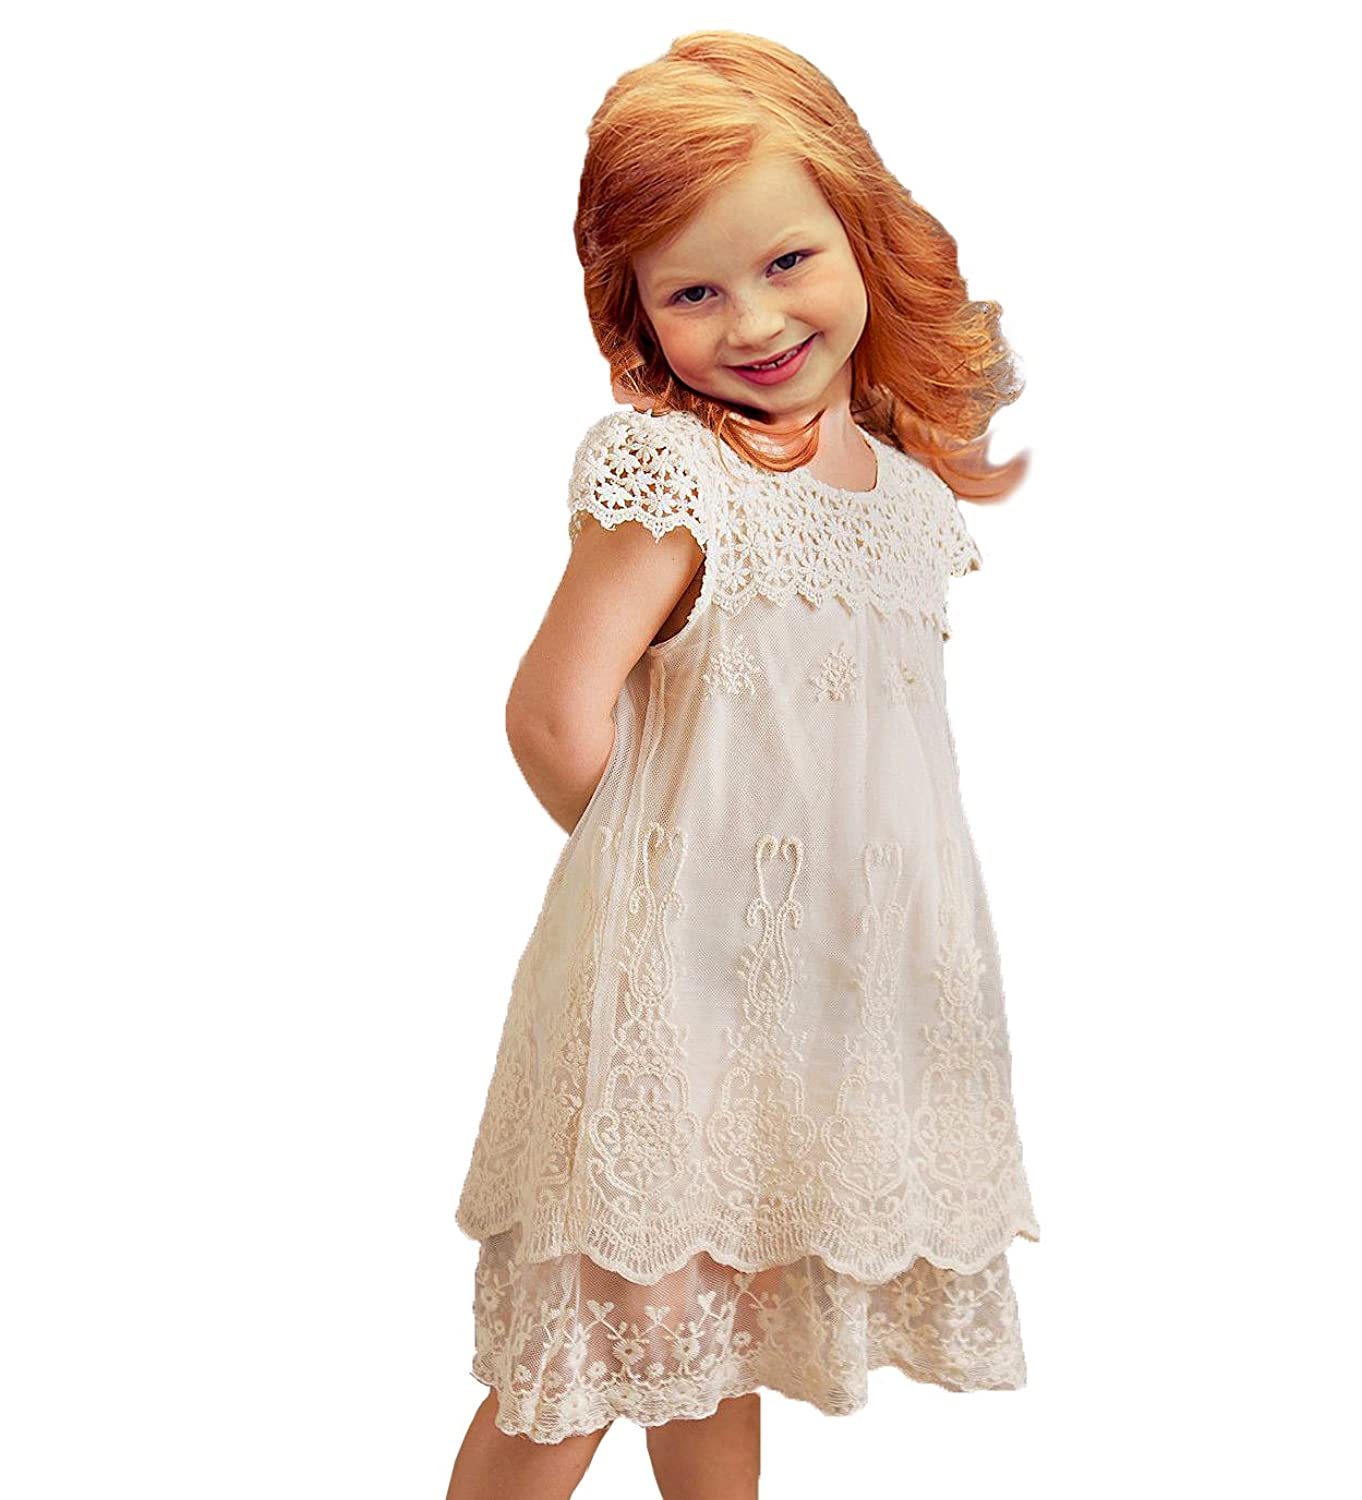 1930s Childrens Fashion: Girls, Boys, Toddler, Baby Costumes Off White Lace Flower Girl Dress  AT vintagedancer.com